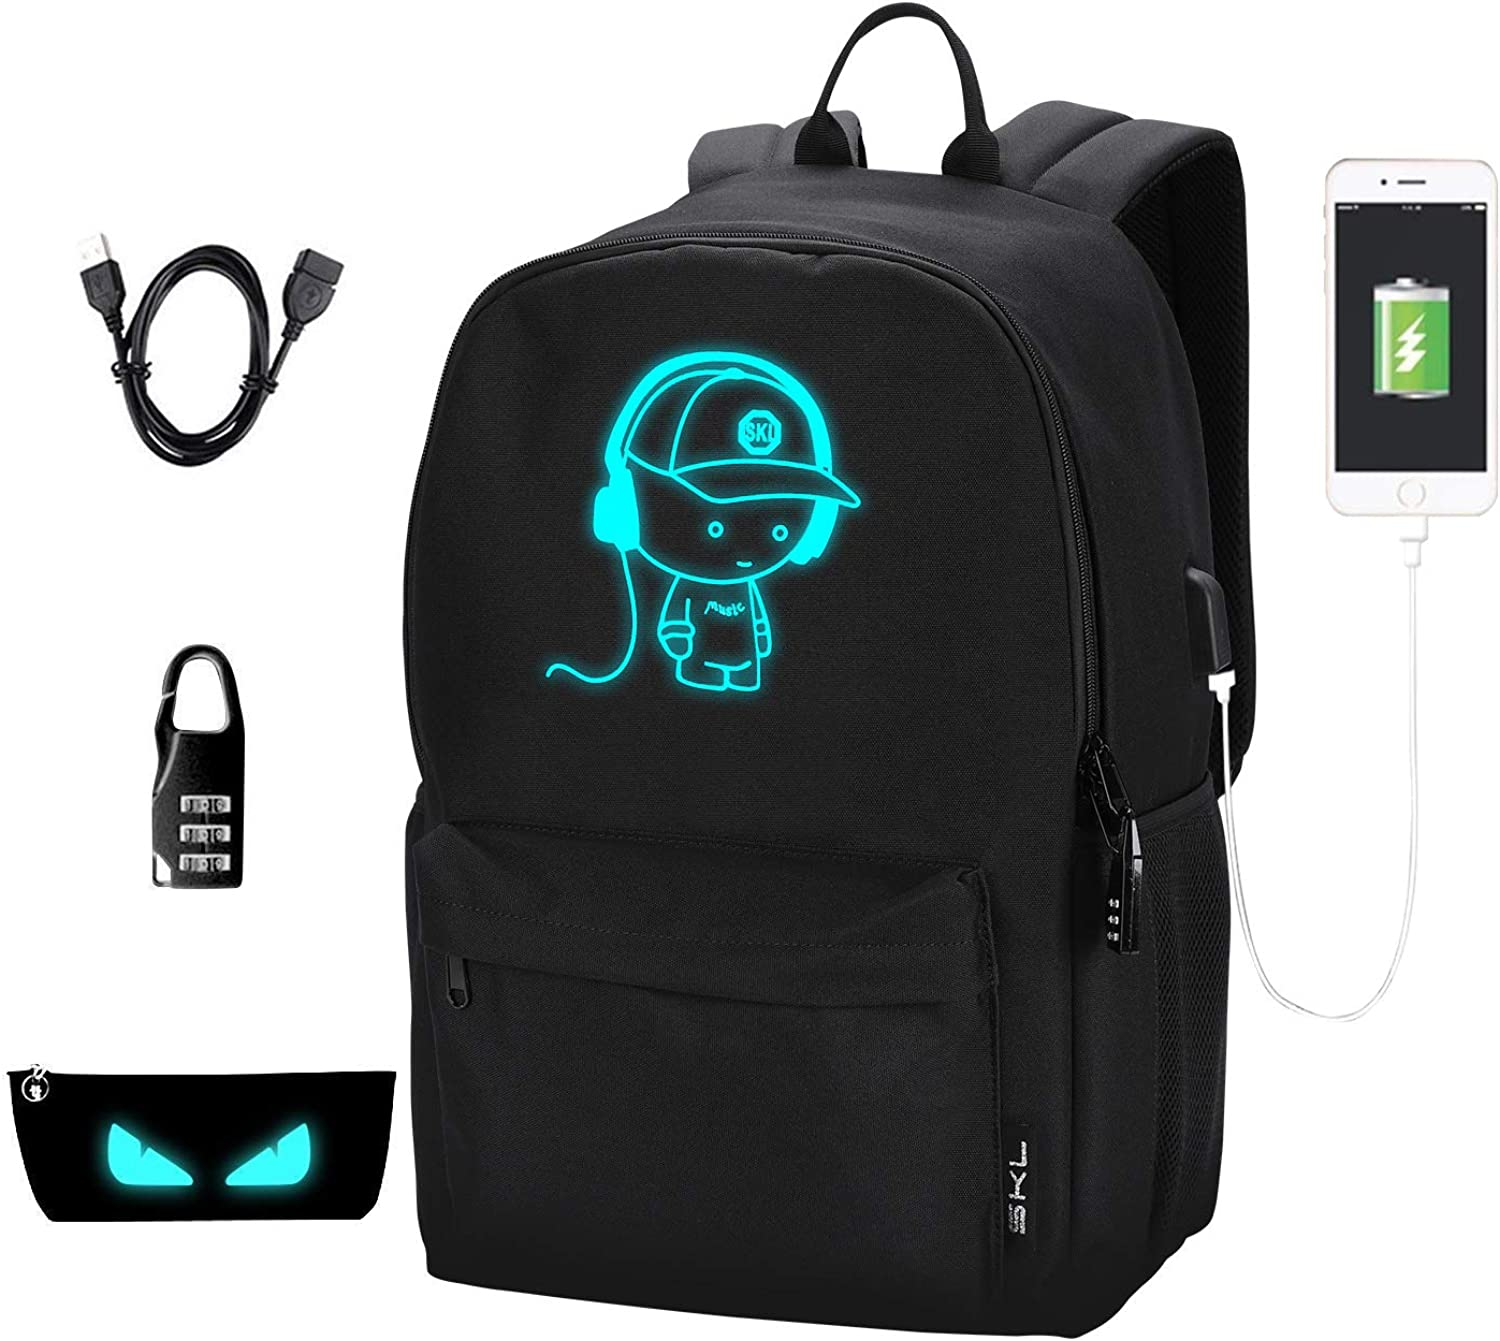 School Backpack School Bag Bookbag Anime Cartoon Backpack with USB Charging Port Pencil Case for Boys Girls Teens